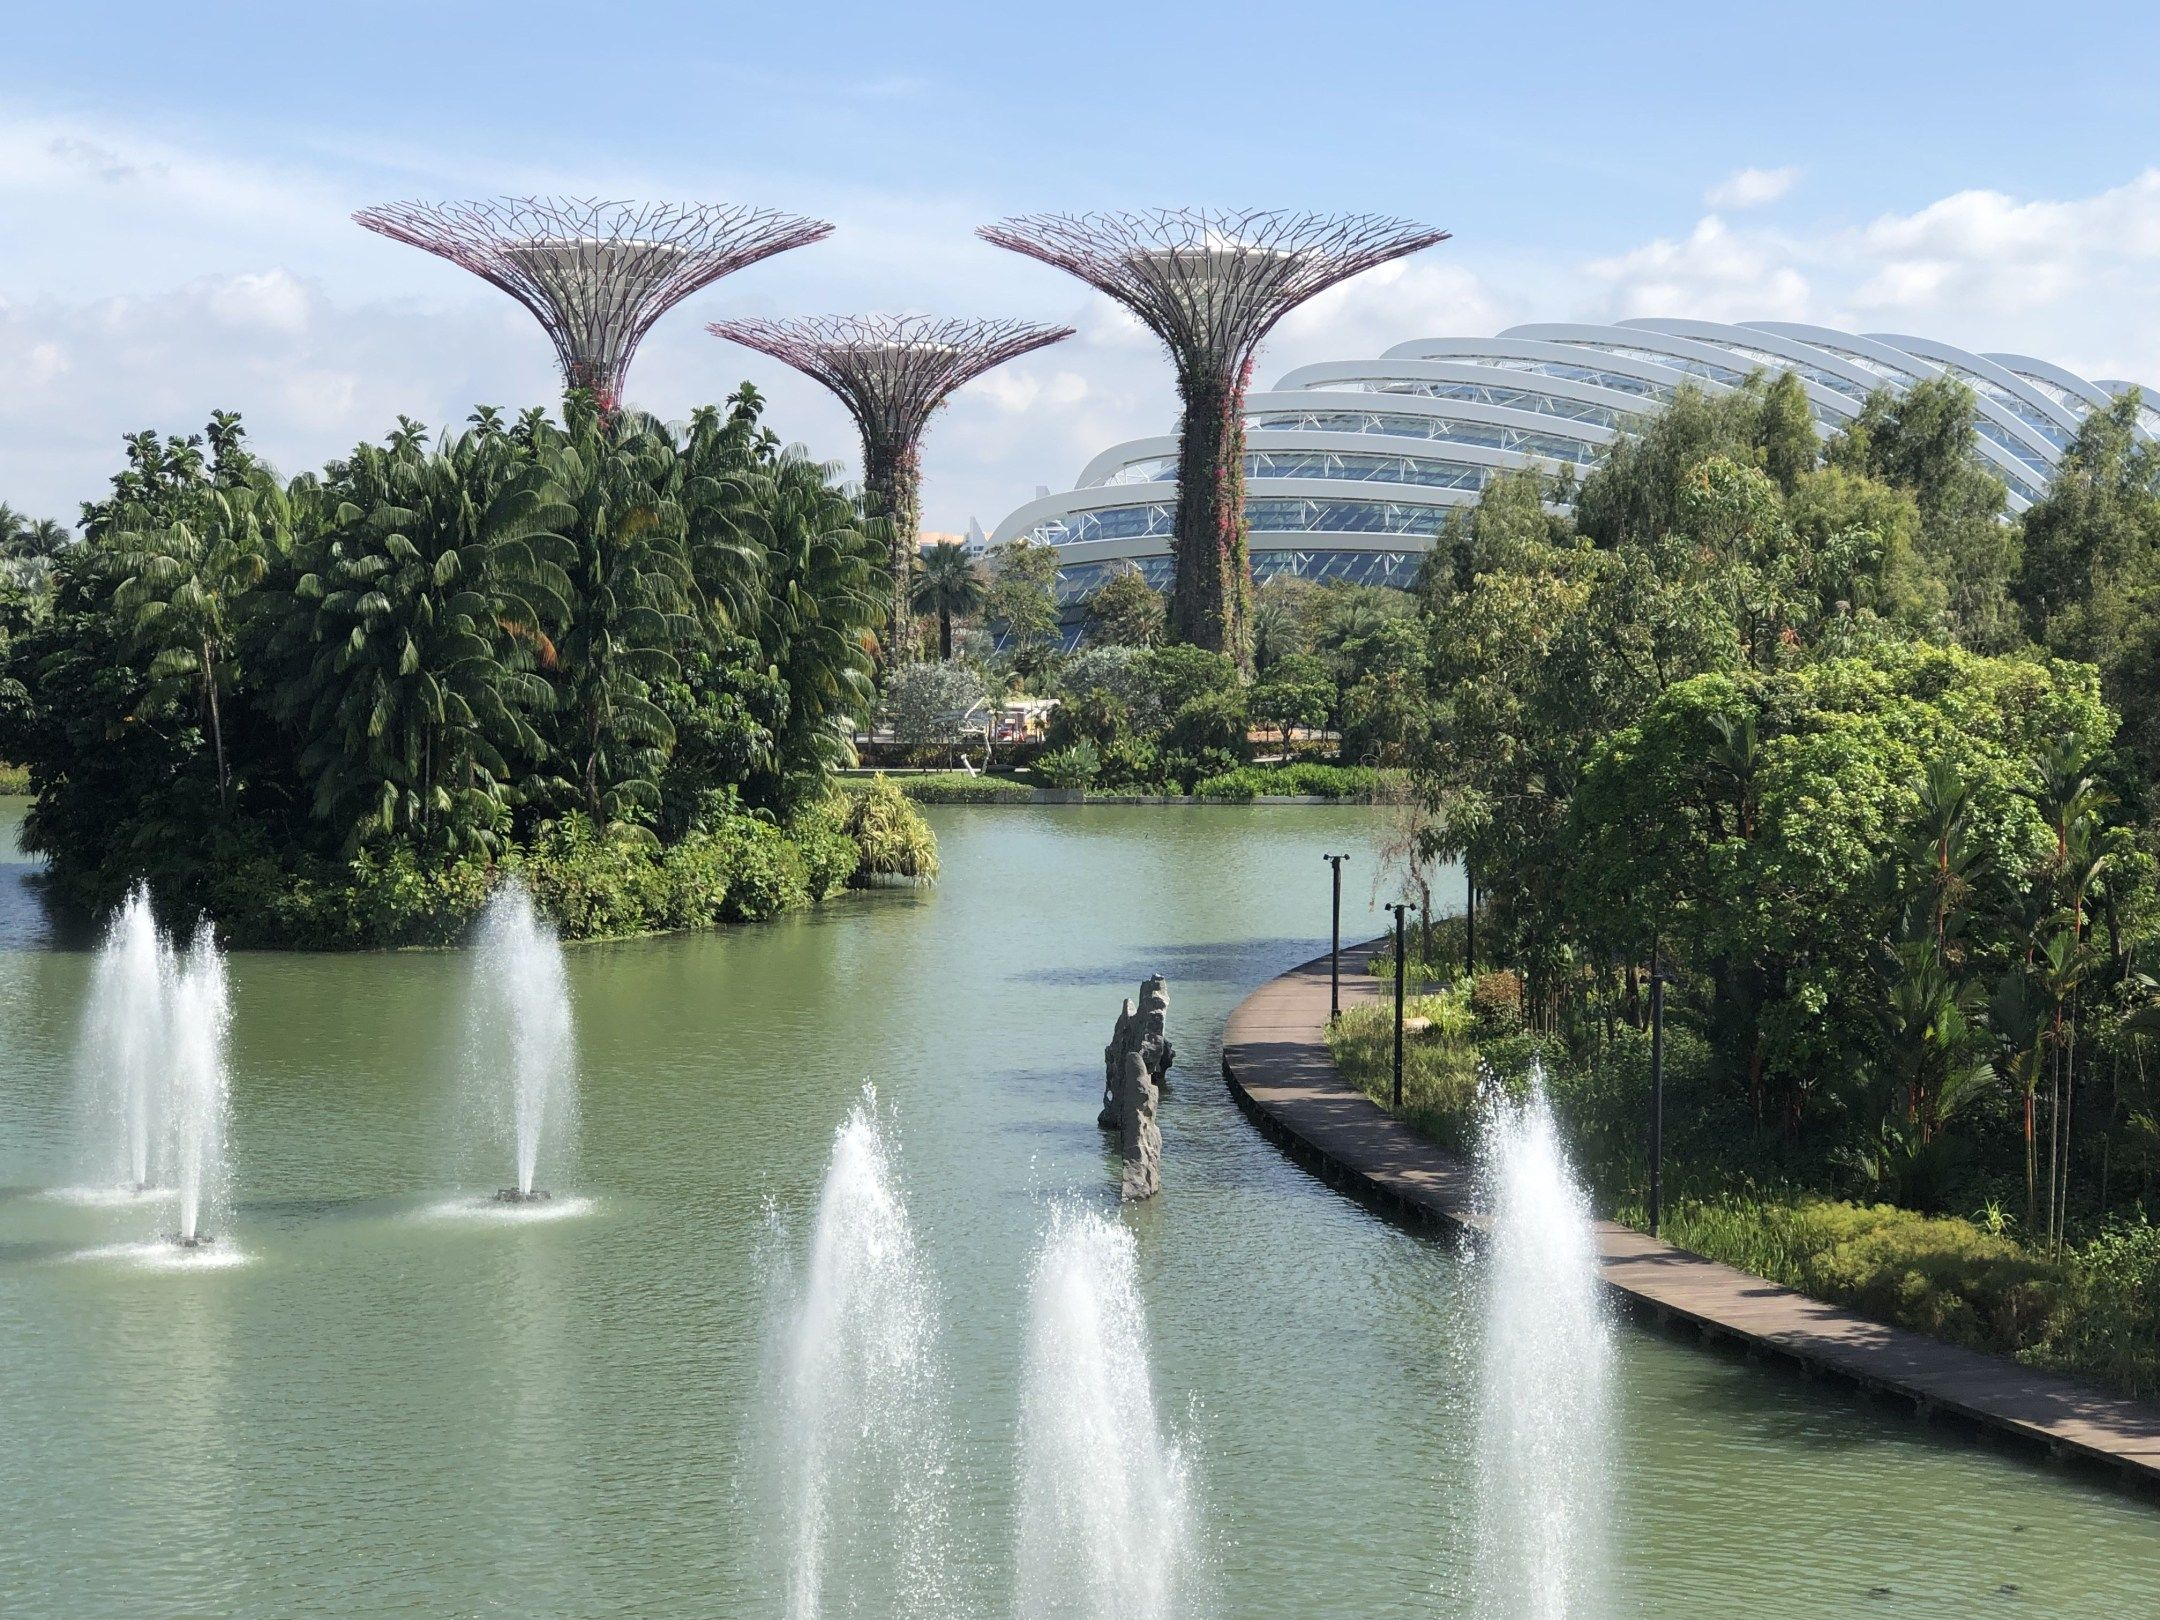 Futuristic Gardens by the Bay is a Feast for the Senses